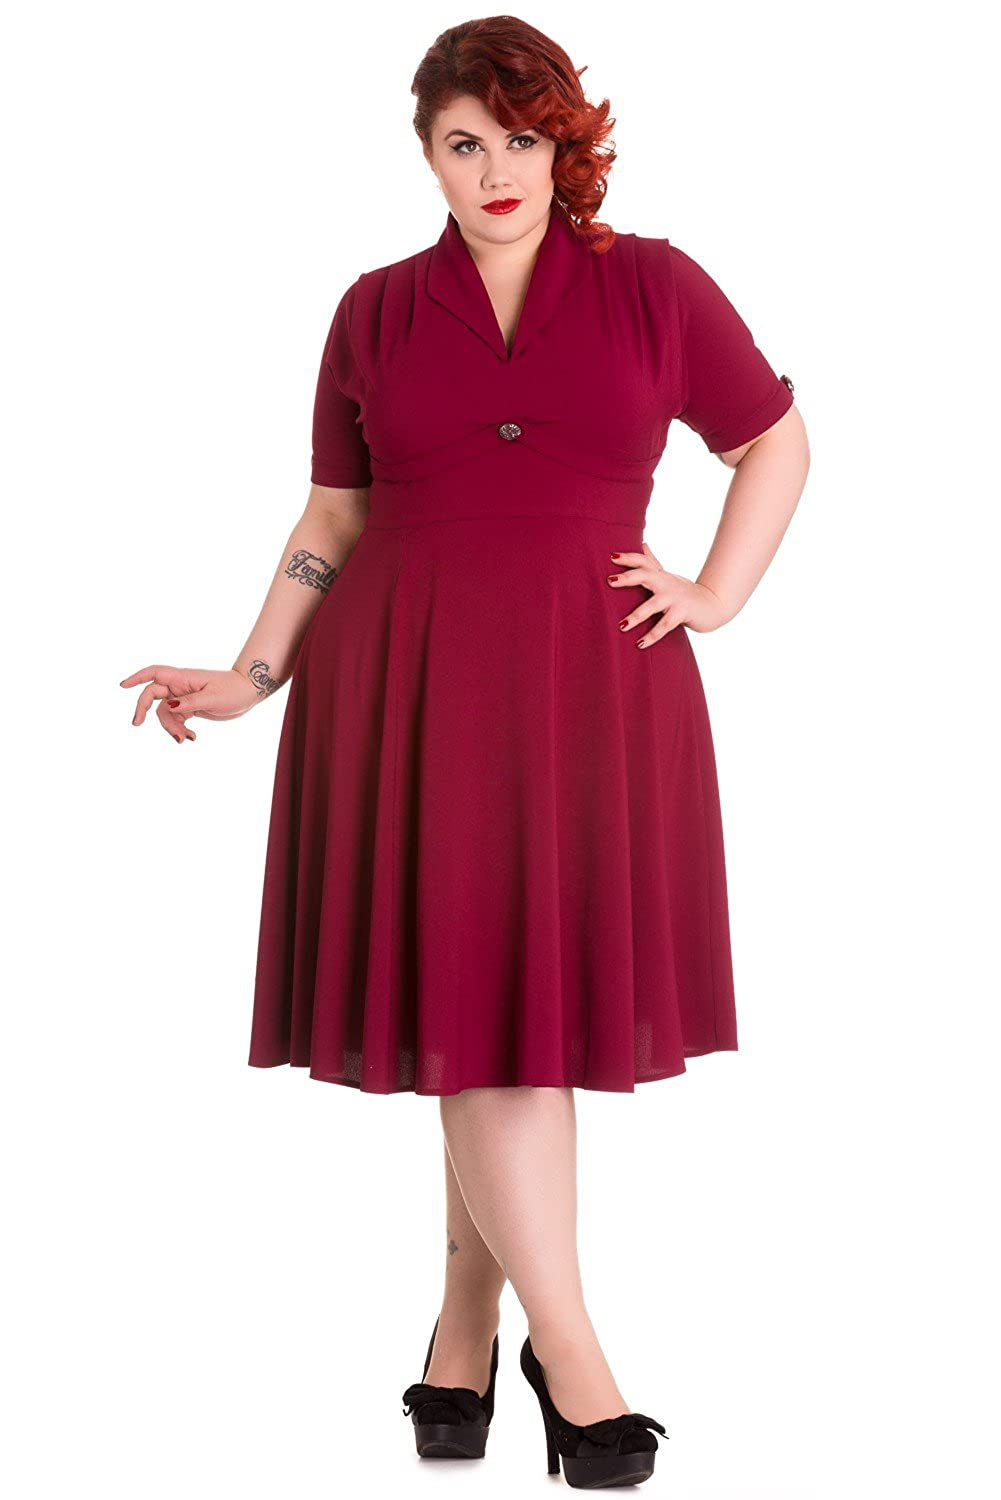 1940s Style Dresses and Clothing Hell Bunny Plus Size 60s Vintage Style Jocelyn Flare PartyDress $87.00 AT vintagedancer.com